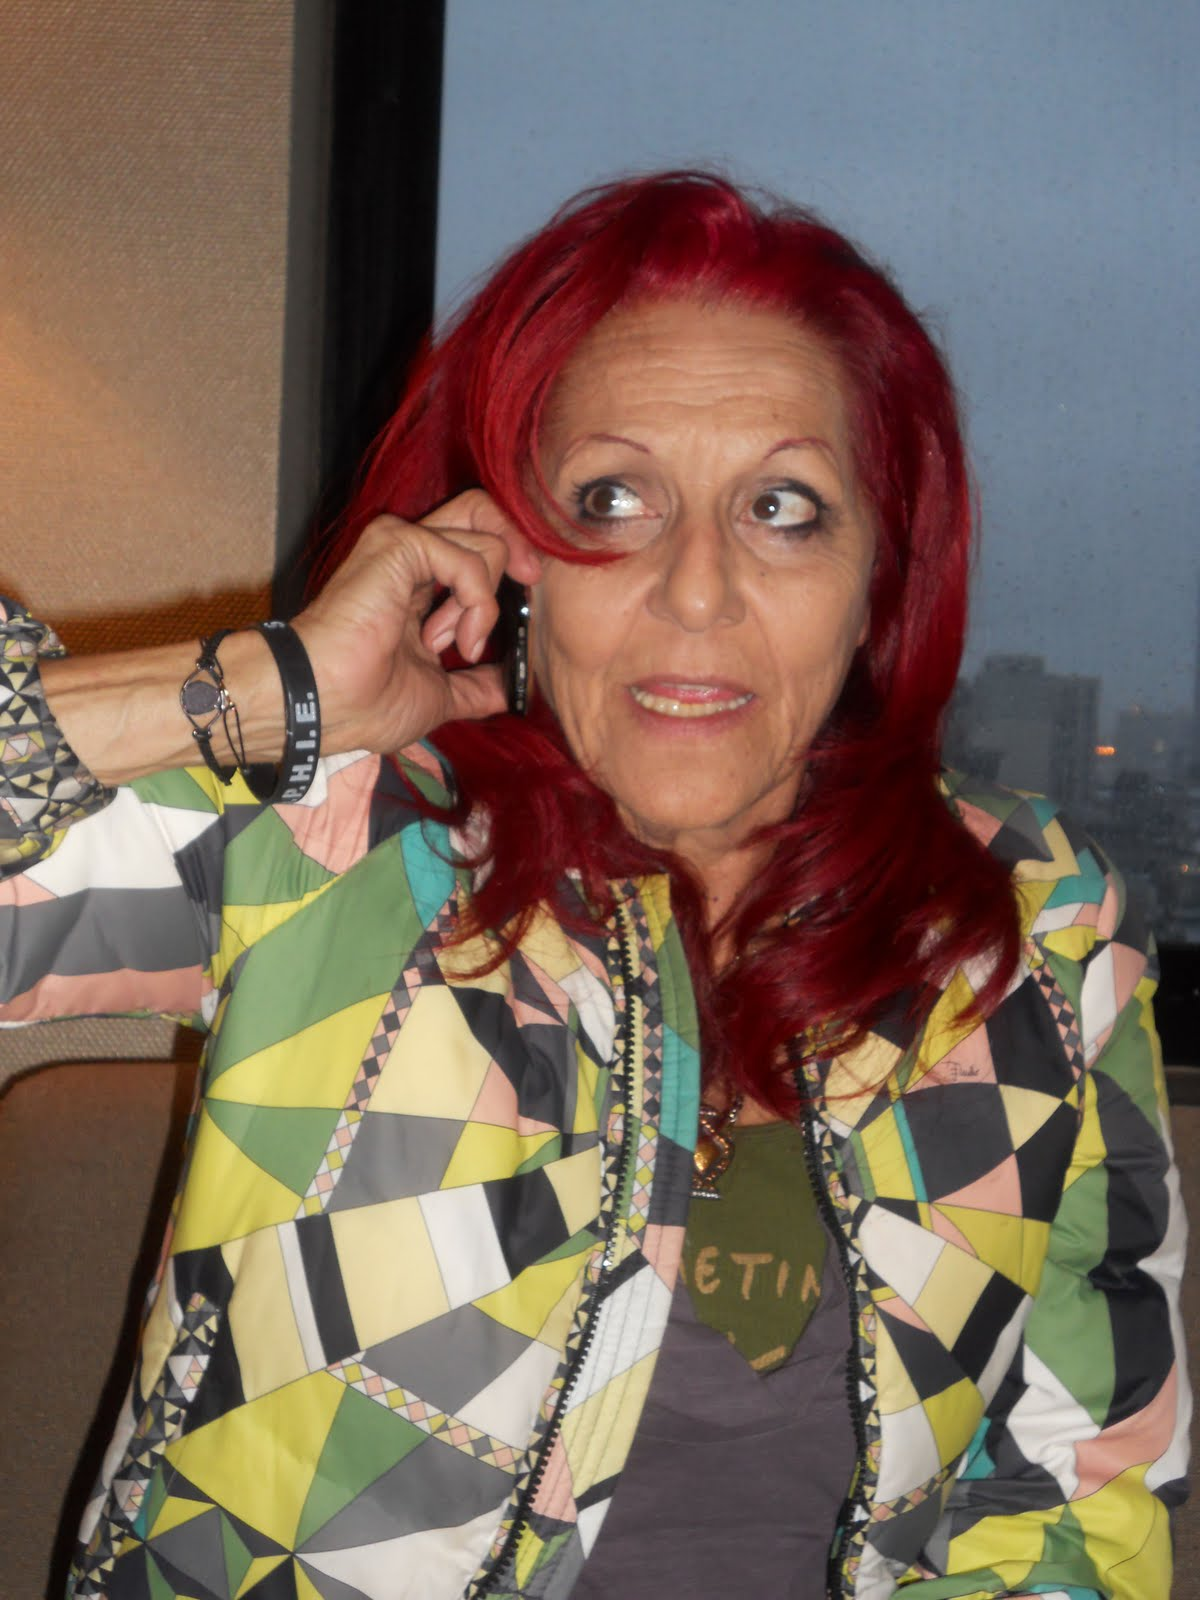 patricia field sex and the city in Denver